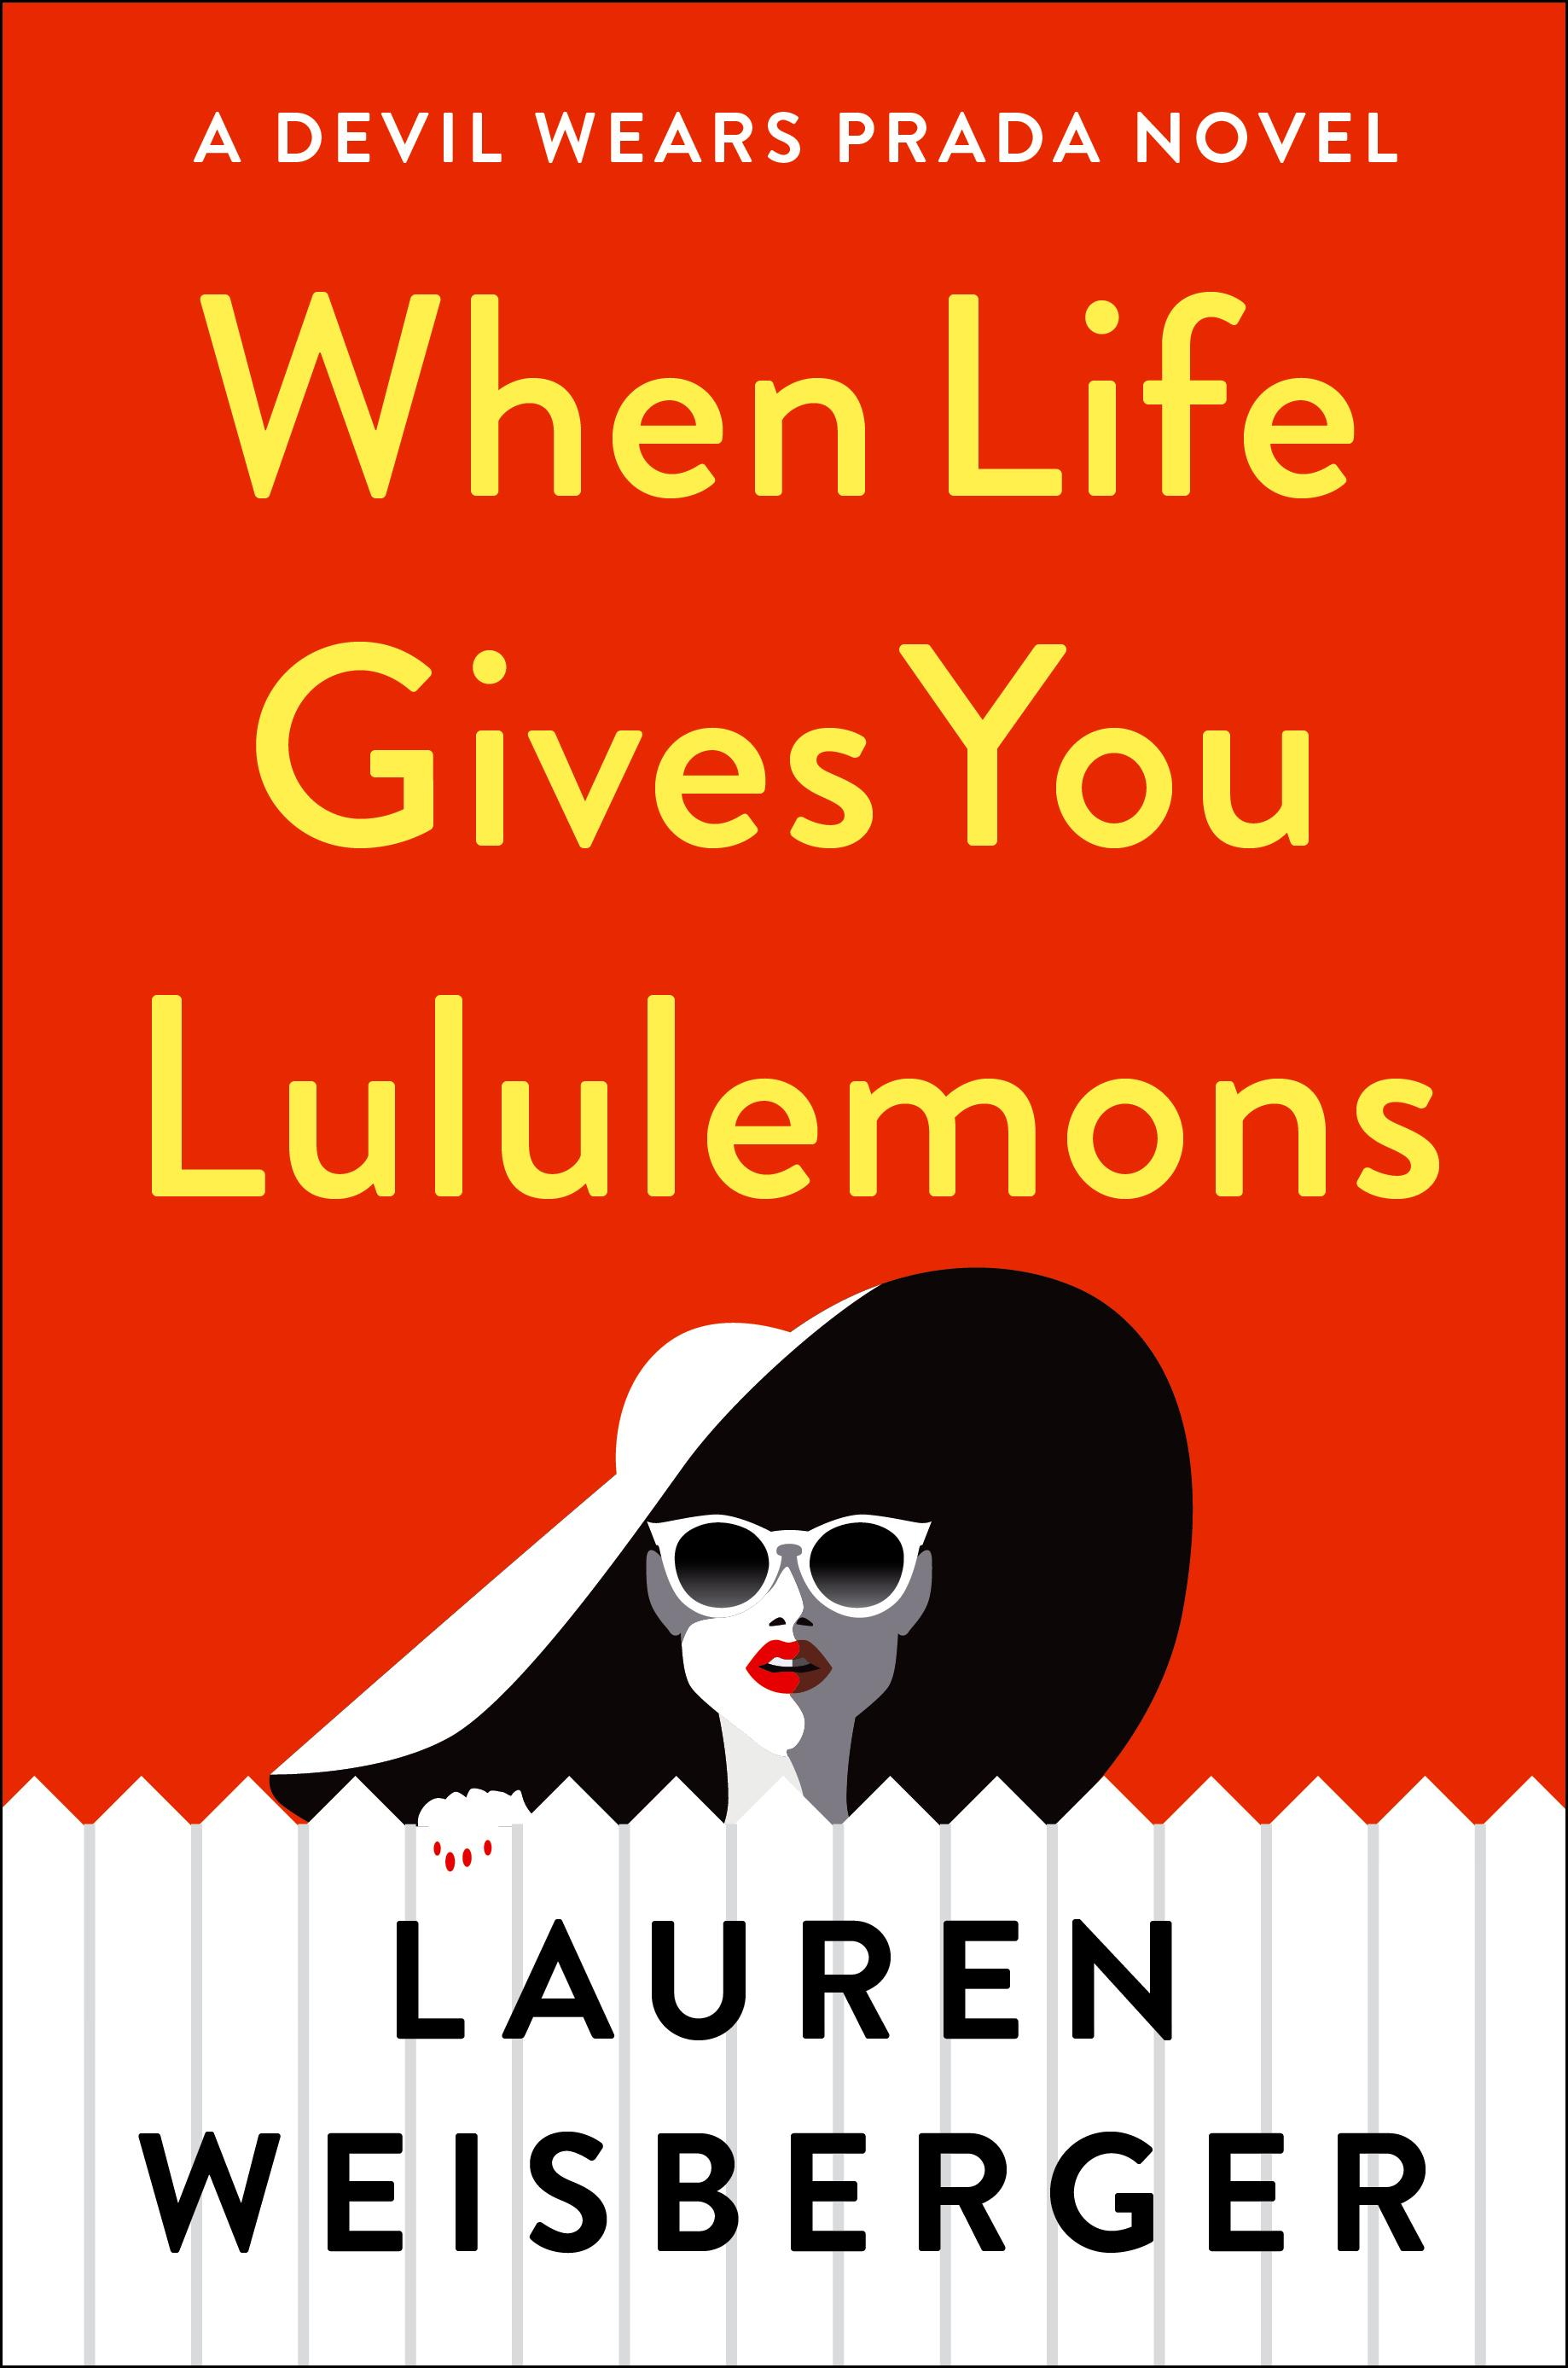 When Life Gives You Lululemons, by Lauren Weisberger (Image: Courtesy{ }Simon & Schuster){ }